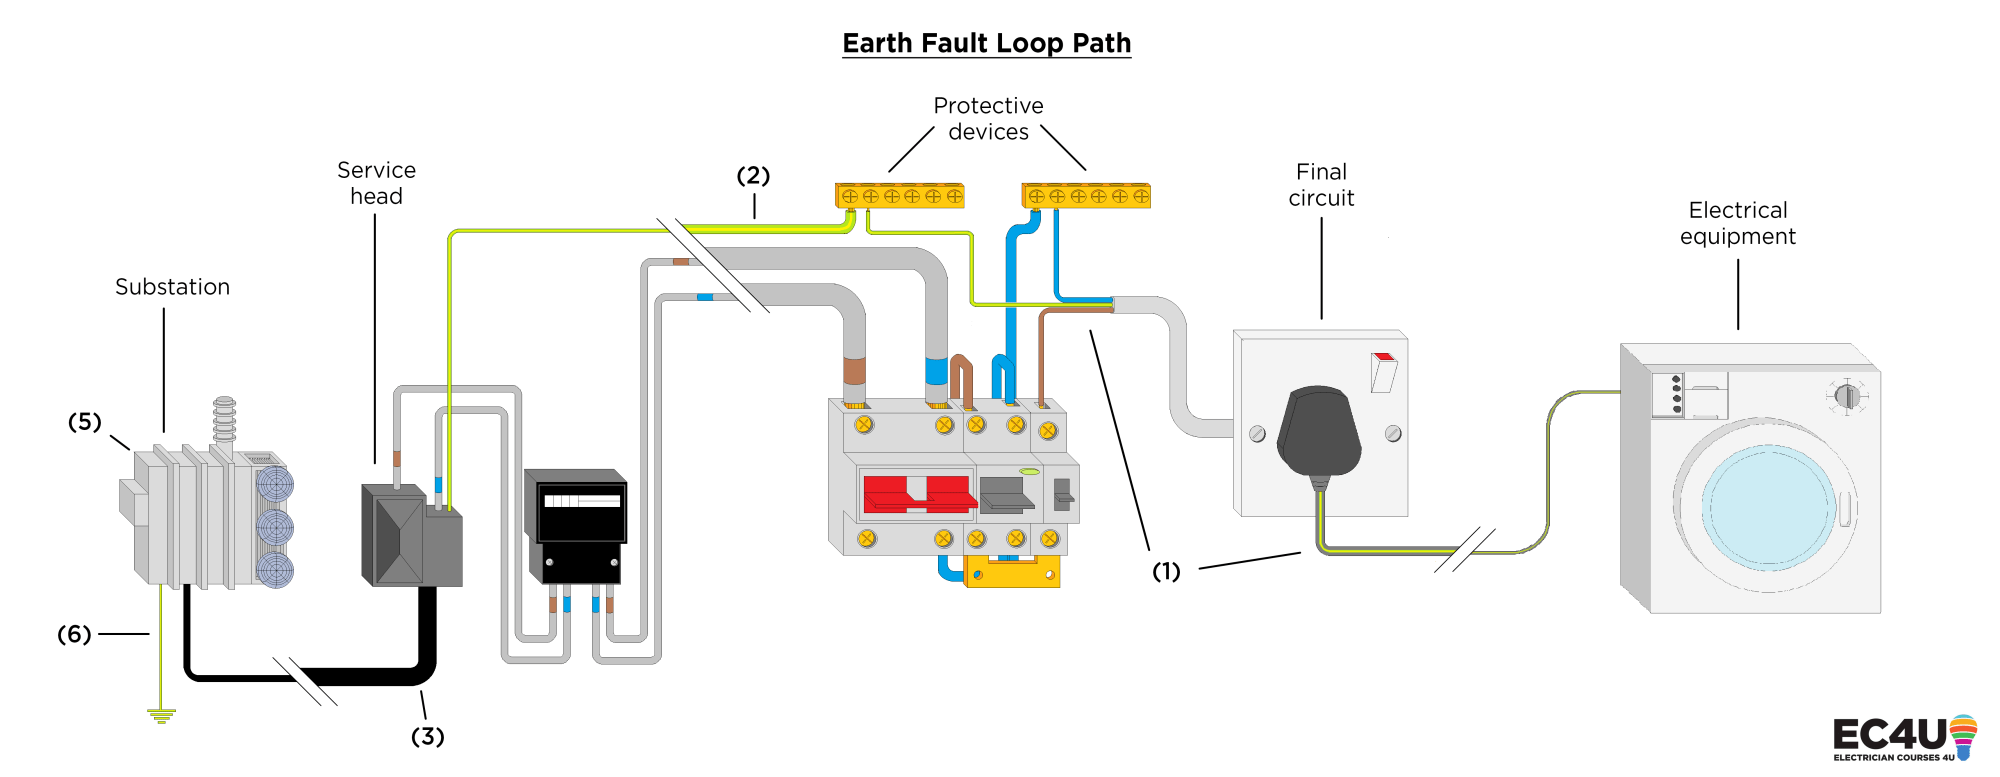 hight resolution of earth fault loop path this is the path the electricity flows when a fault arises causing the activation of the protective device for the circuit affected